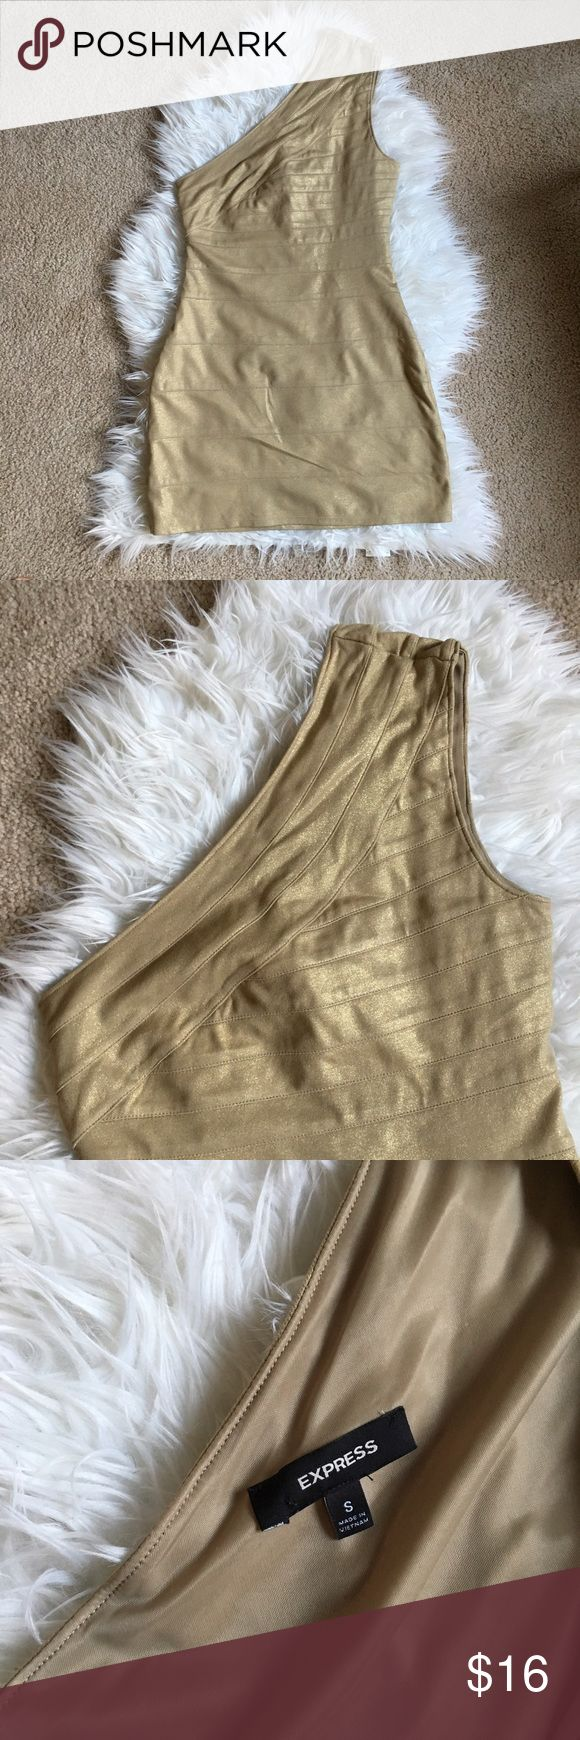 SALE! 🌸 Express Gold Mini Dress Gold one-shoulder mini dress with shimmer. I'm 5'4 and the dress hits slightly above mid thigh. Only worn once to a wedding. Express Dresses Mini